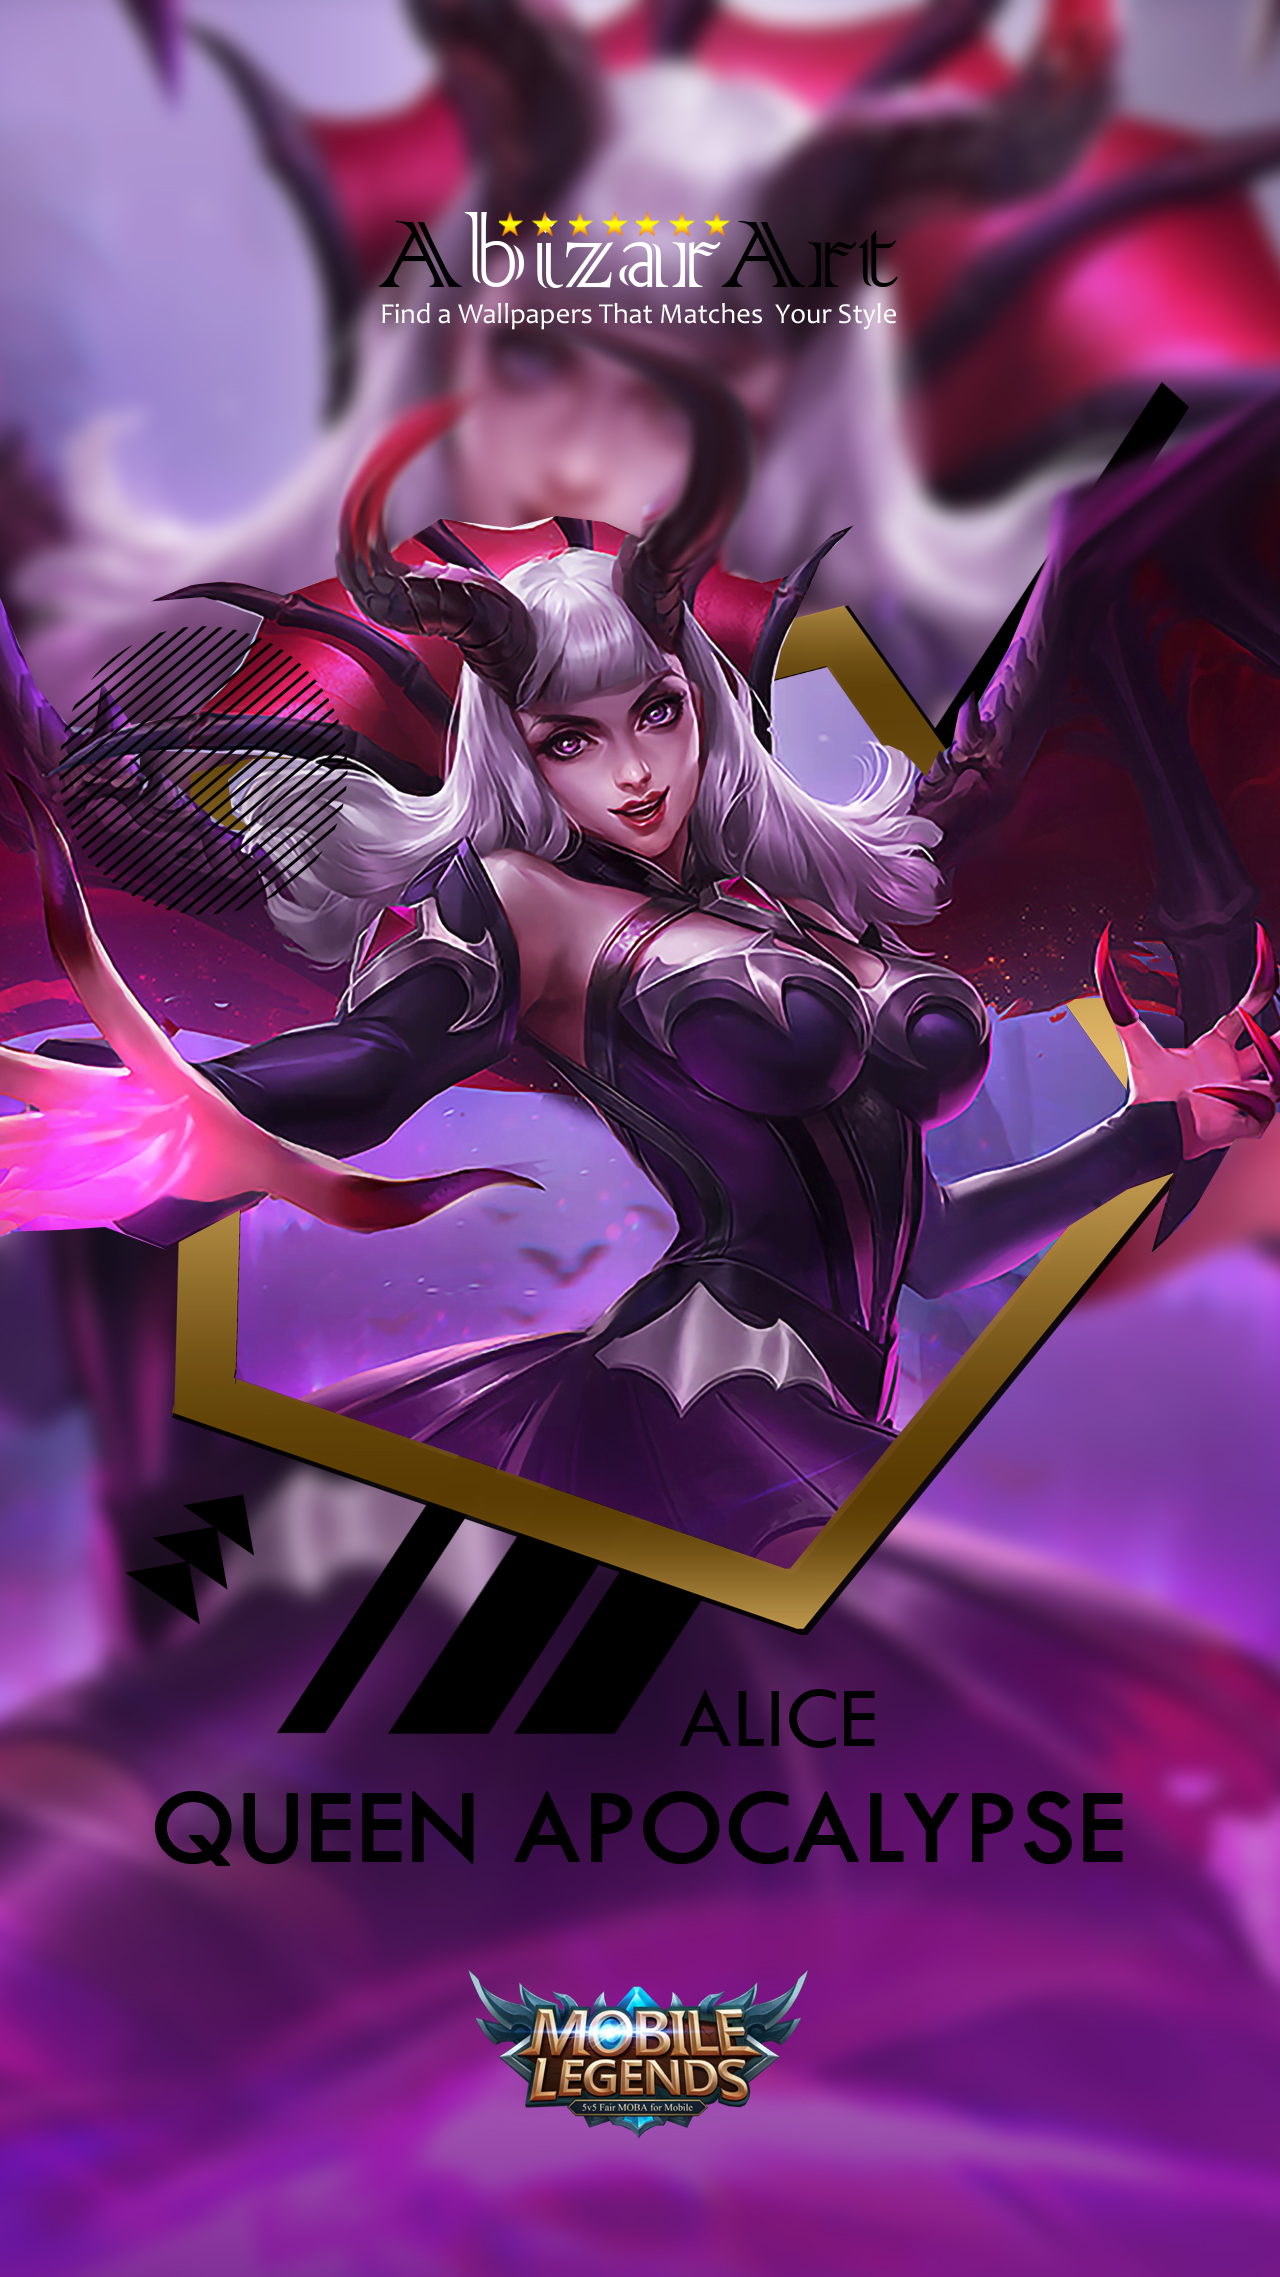 Top Ten Alice Mobile Legends Wallpaper